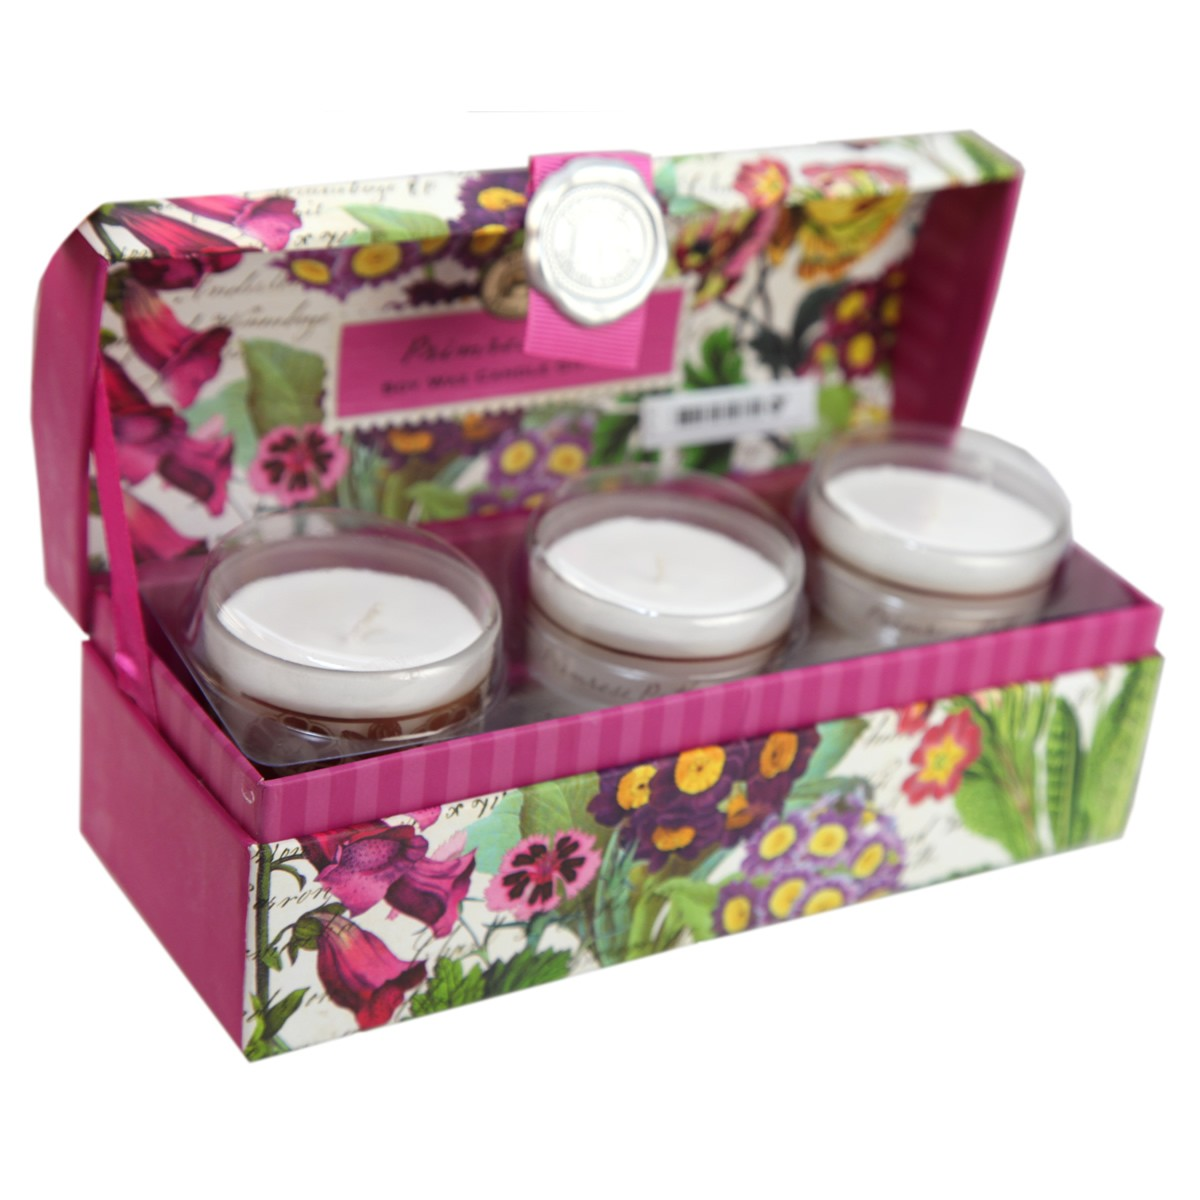 Michel Design Works Primrose Path Soy Wax Candle Gift Set